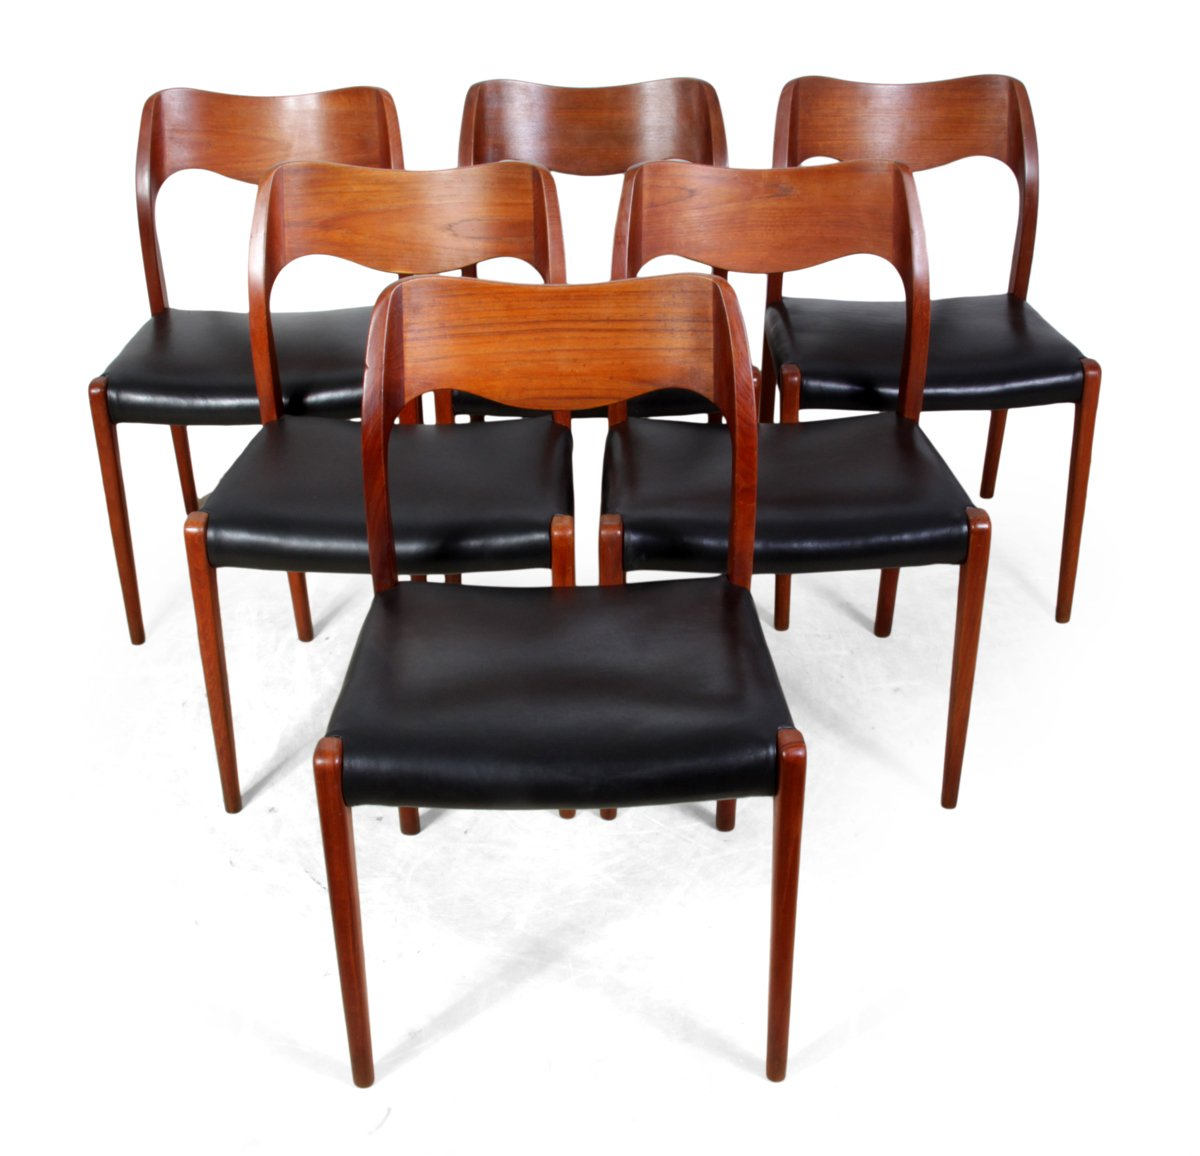 Vintage Moller Dining Chairs ~ Model teak dining chairs by n o moller for j l mollers